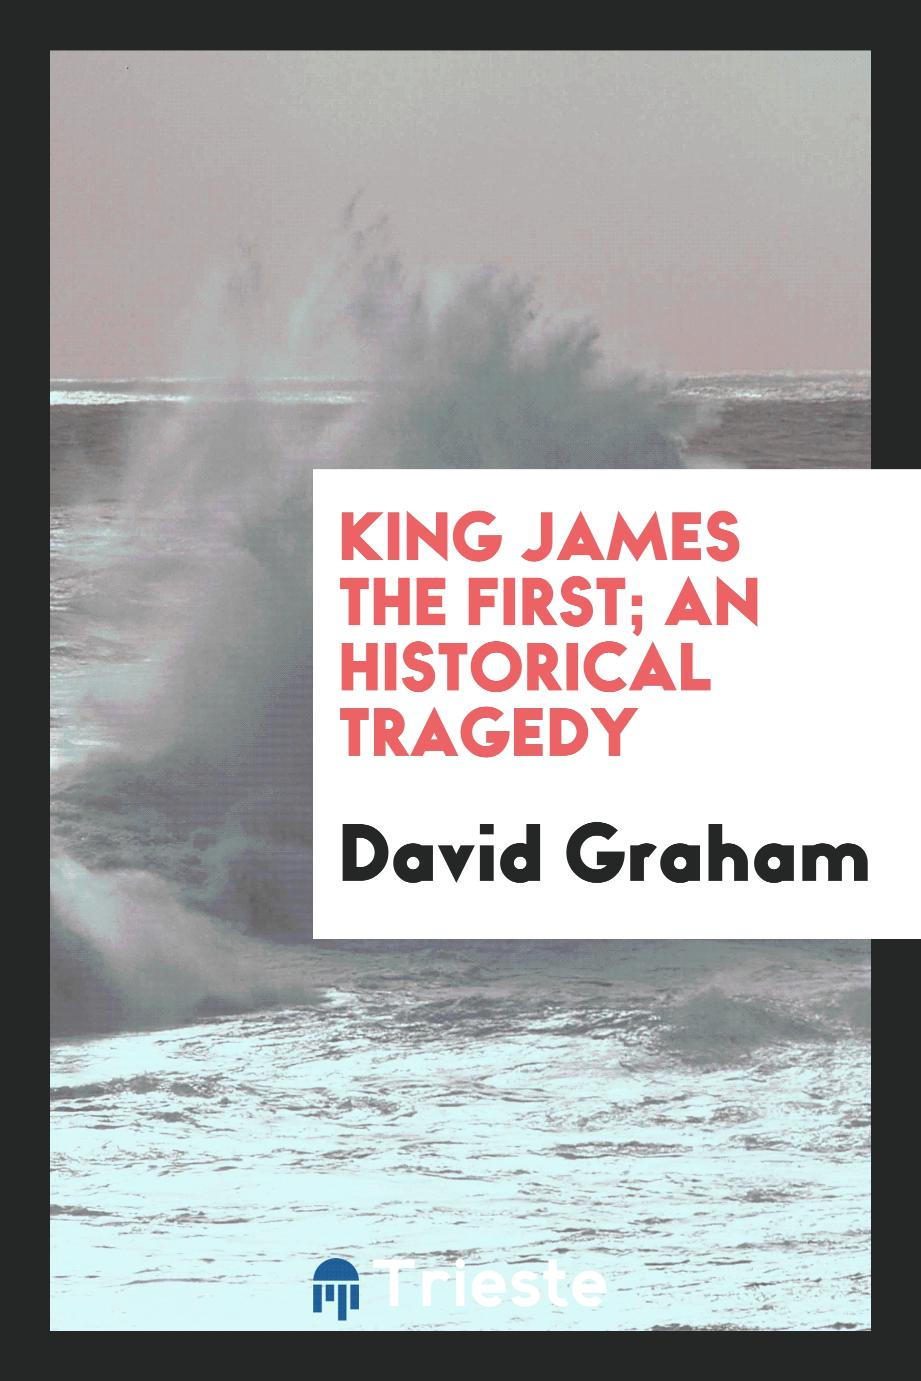 King James the First; an historical tragedy